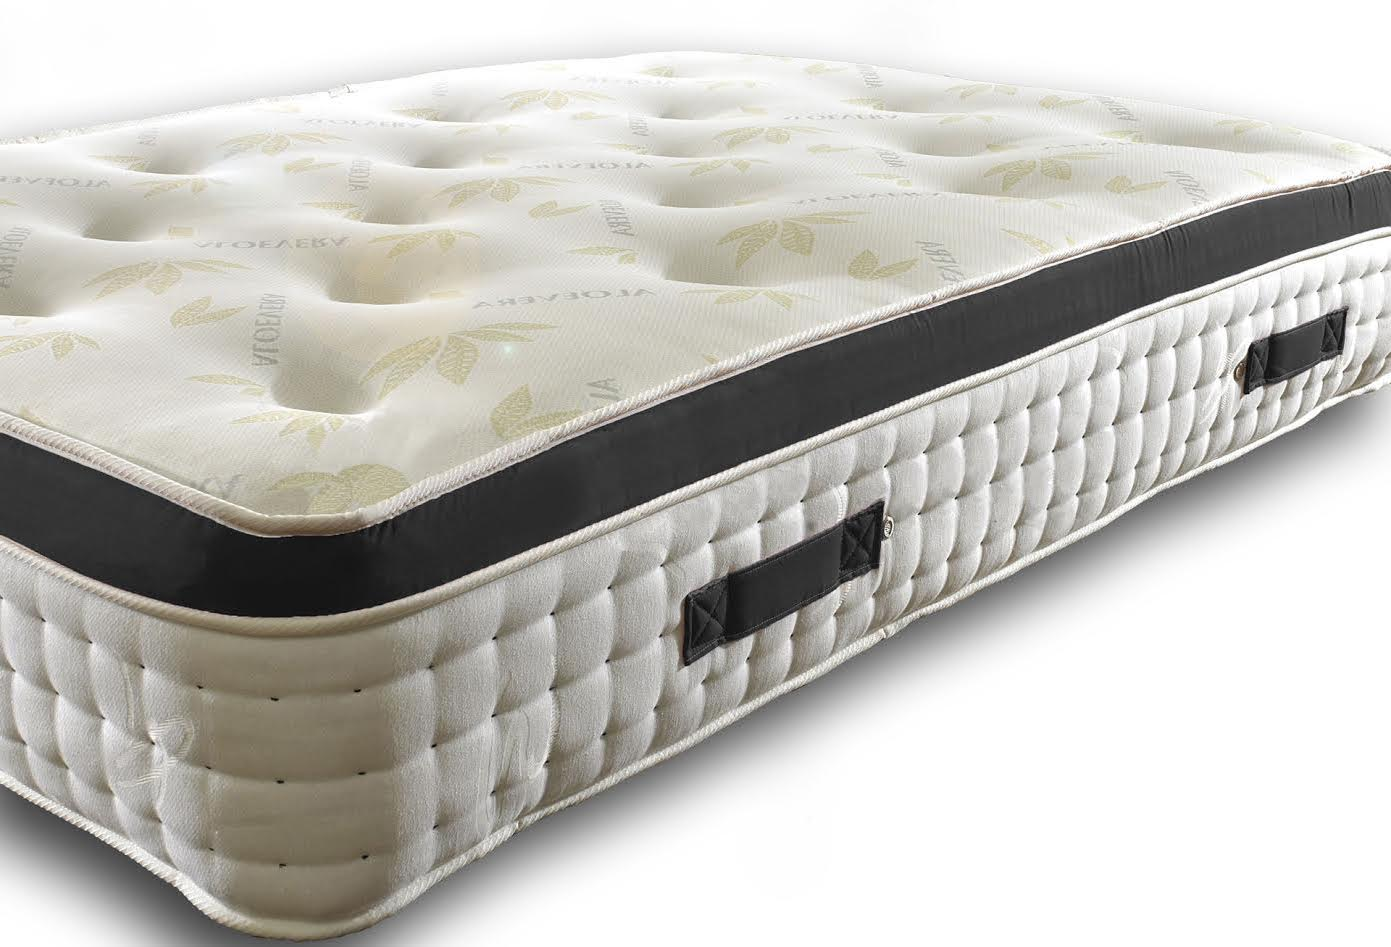 Levi Memory Foam Pocket Spring Pillow Top Mattress Wide Range Of Spring Count